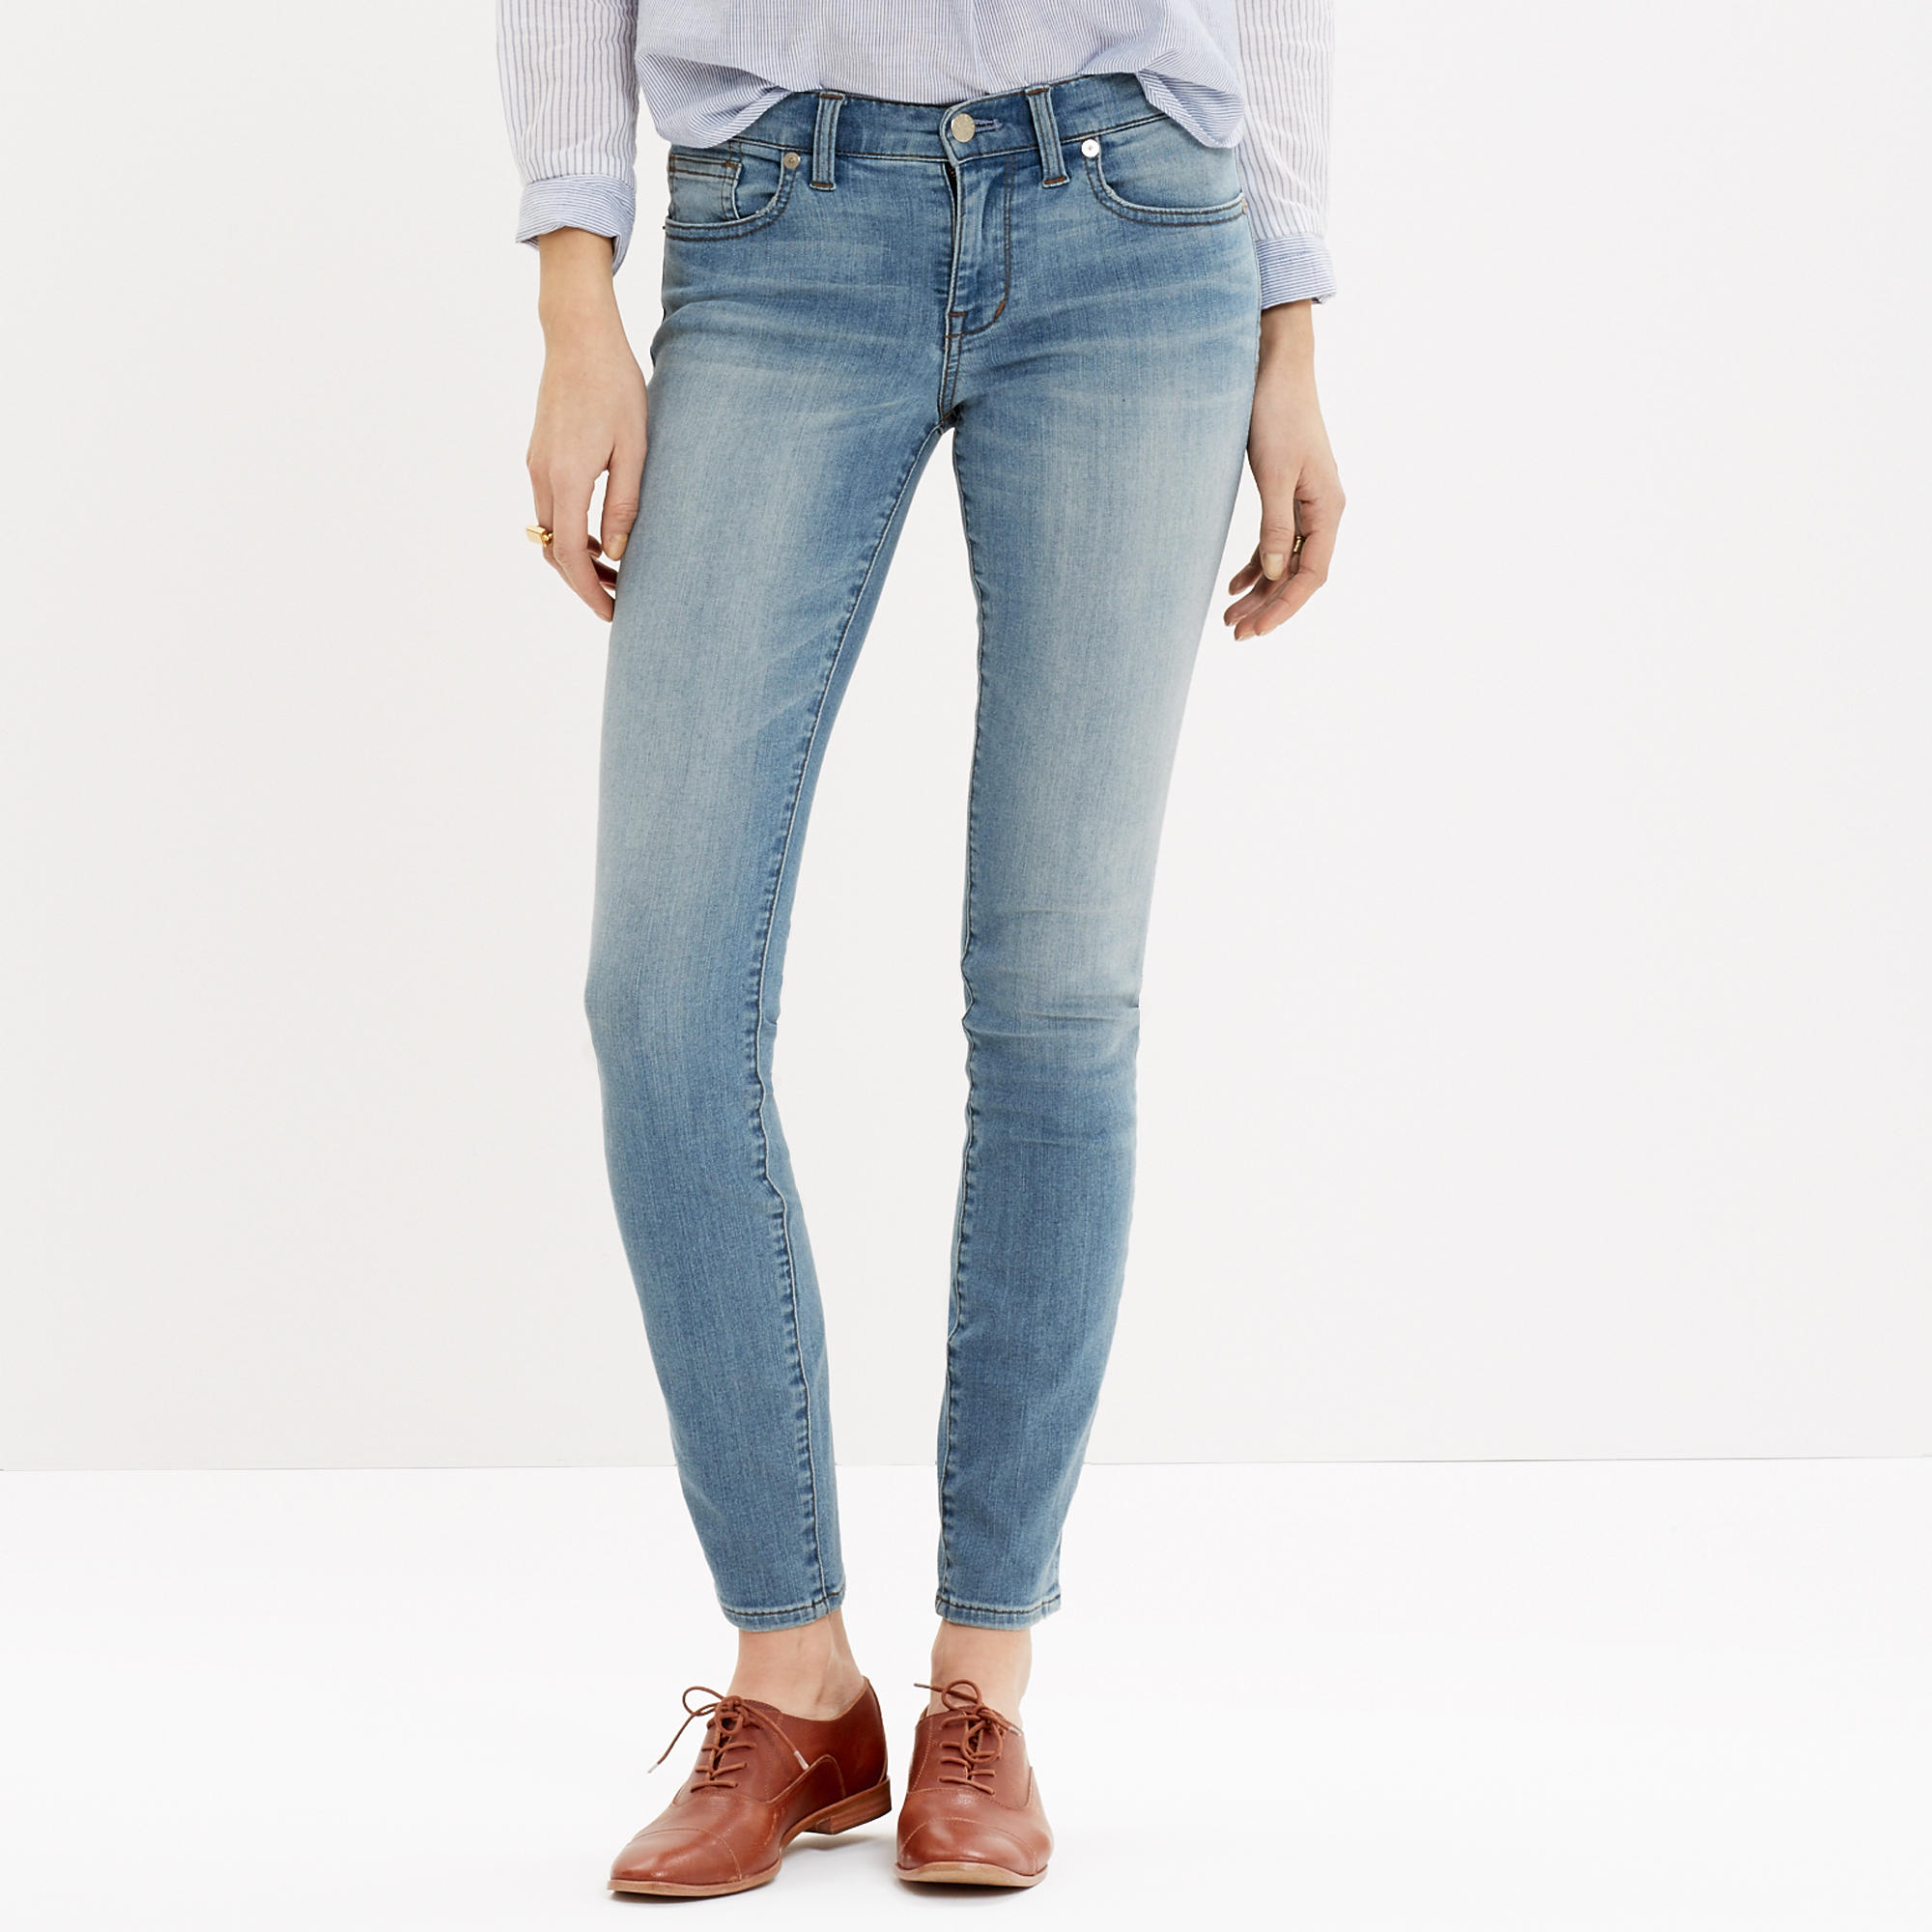 Madewell skinny skinny jeans review